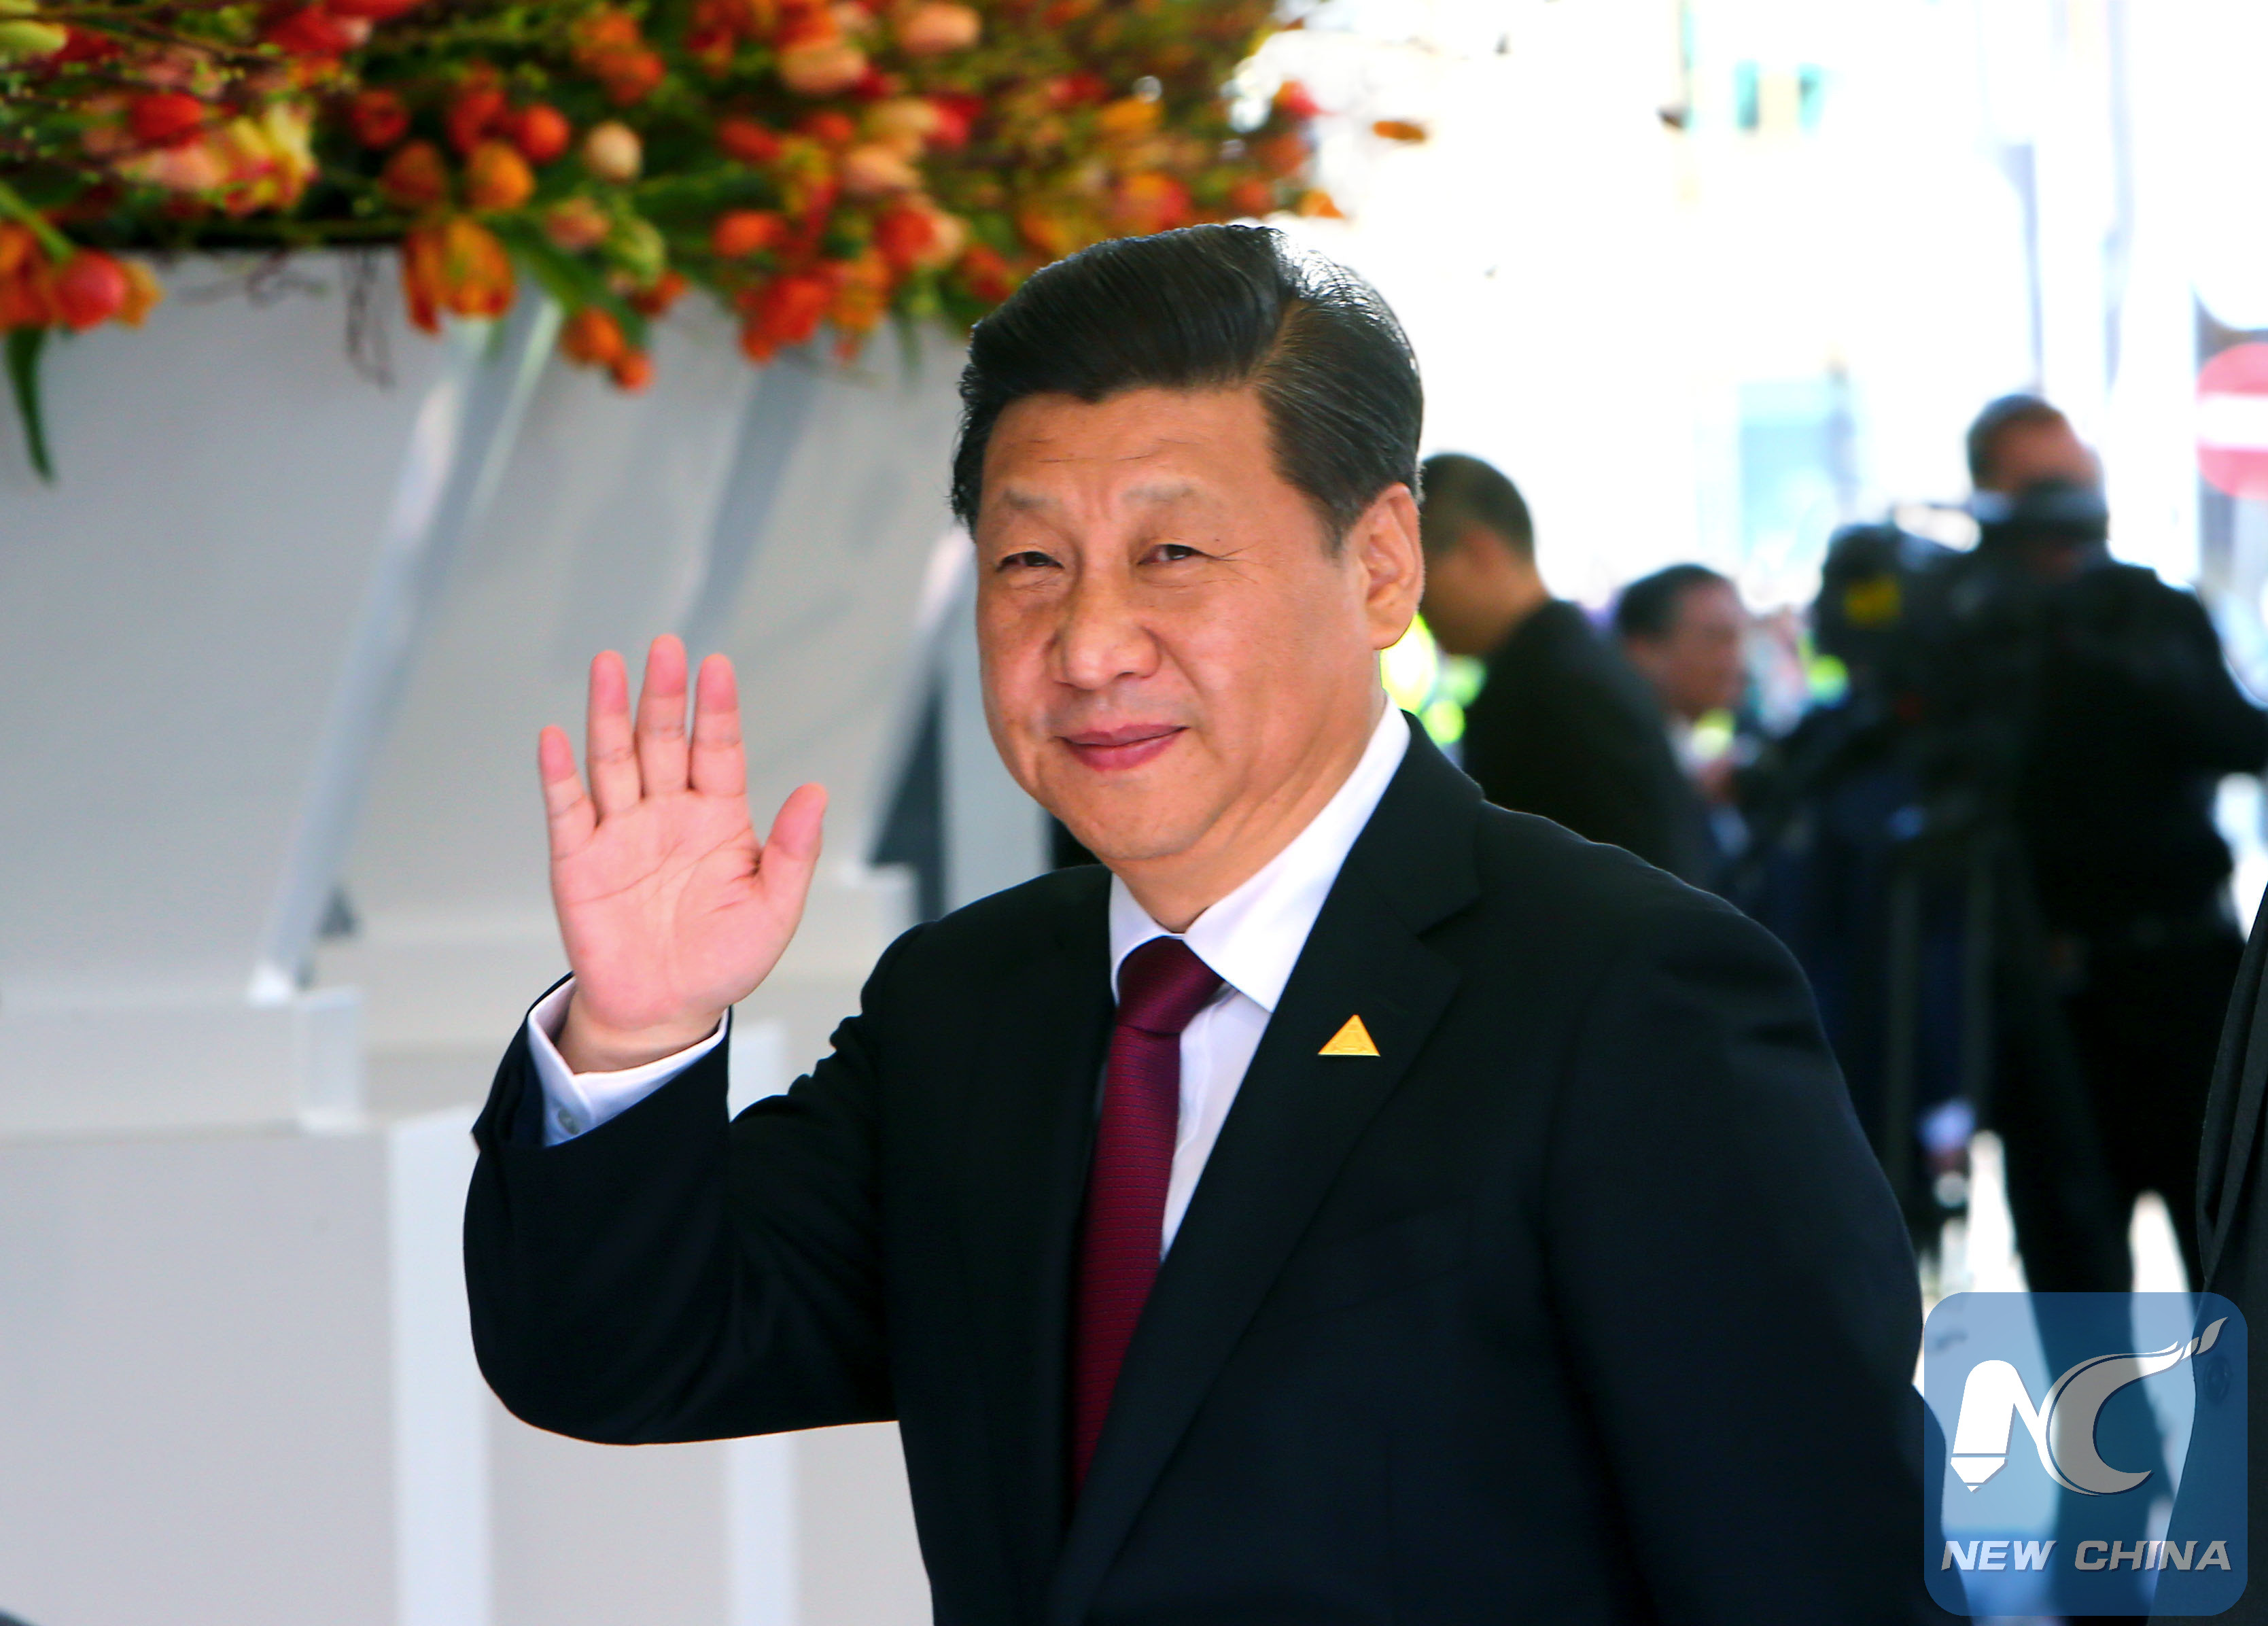 Xi leaves Beijing for India, arriving in Nepal tomorrow